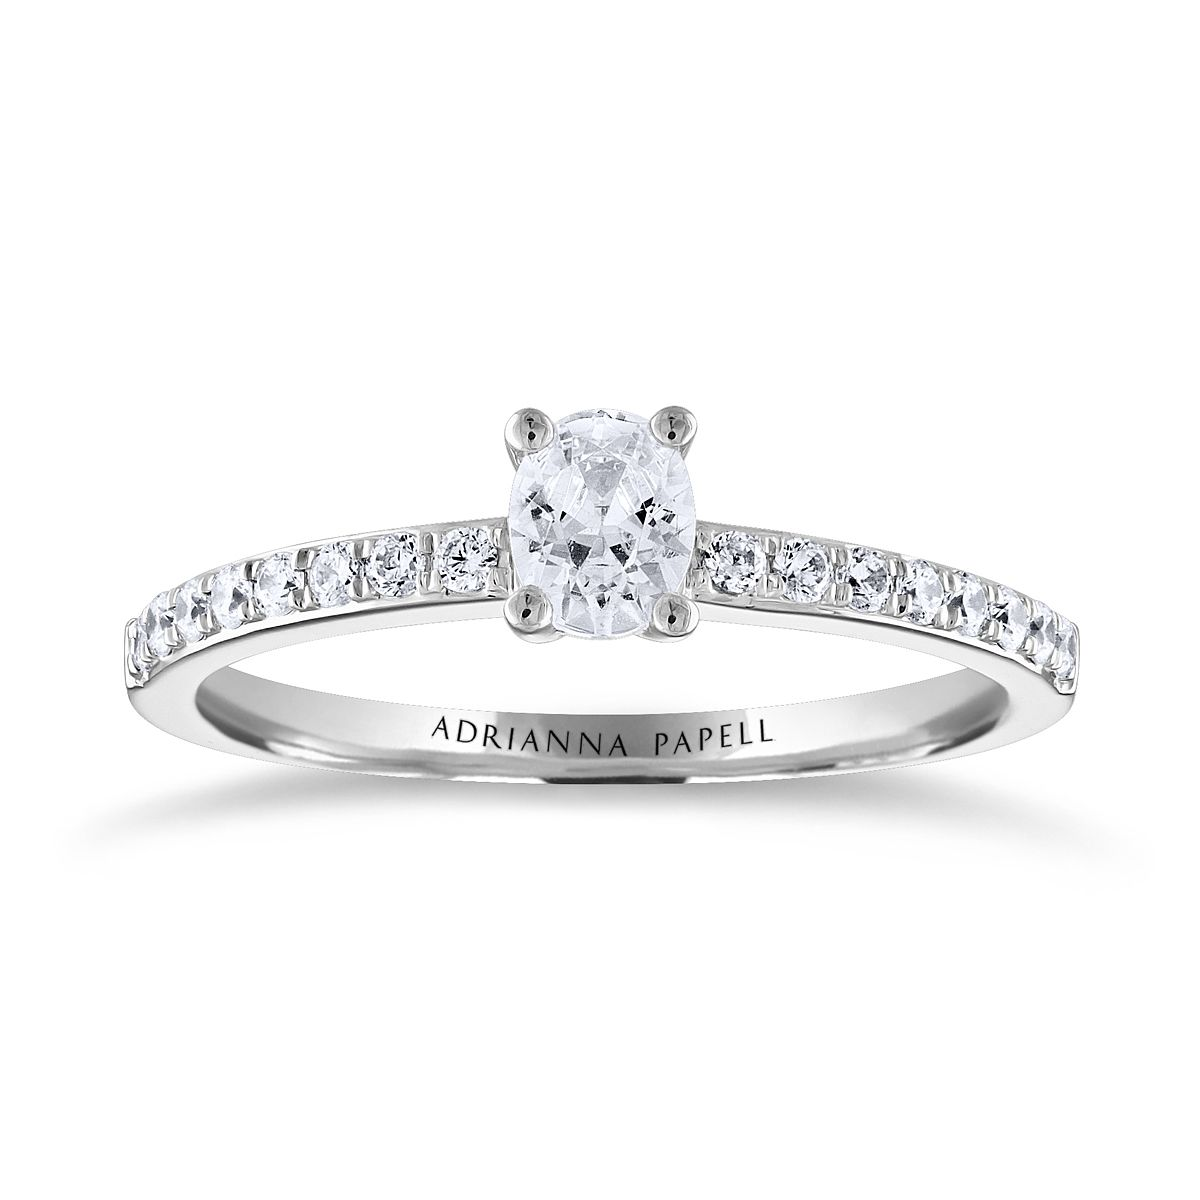 Adrianna Papell 14ct White Gold 0.50ct Total Diamond Ring - Product number 3809250